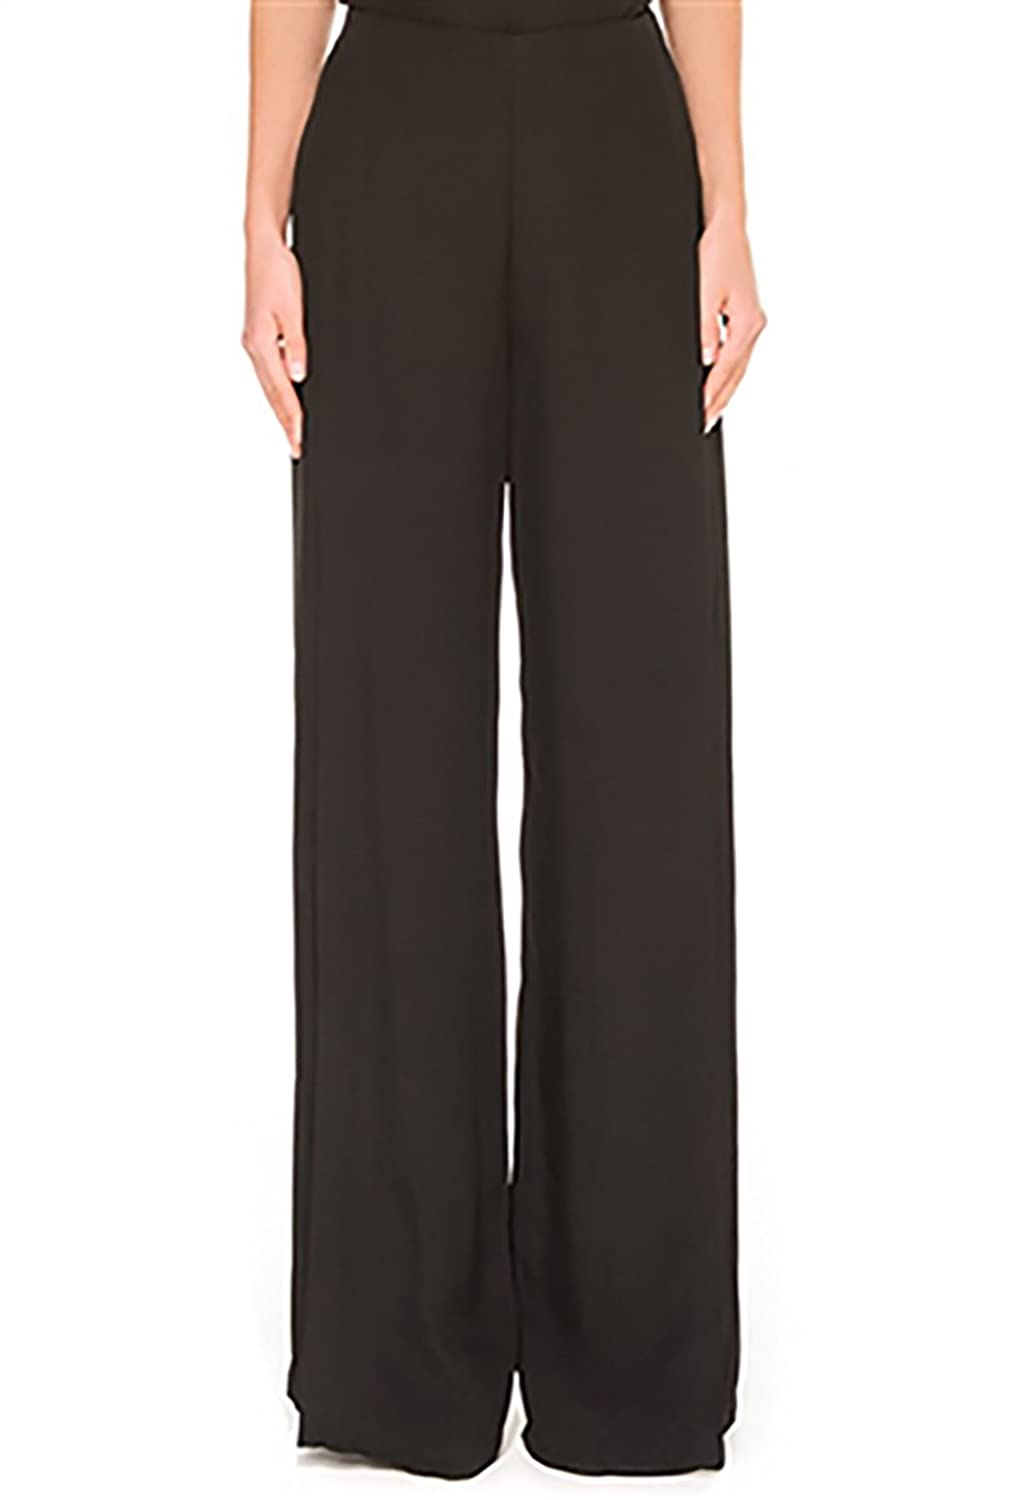 C/Meo Collective Stay Ready Pant in Black